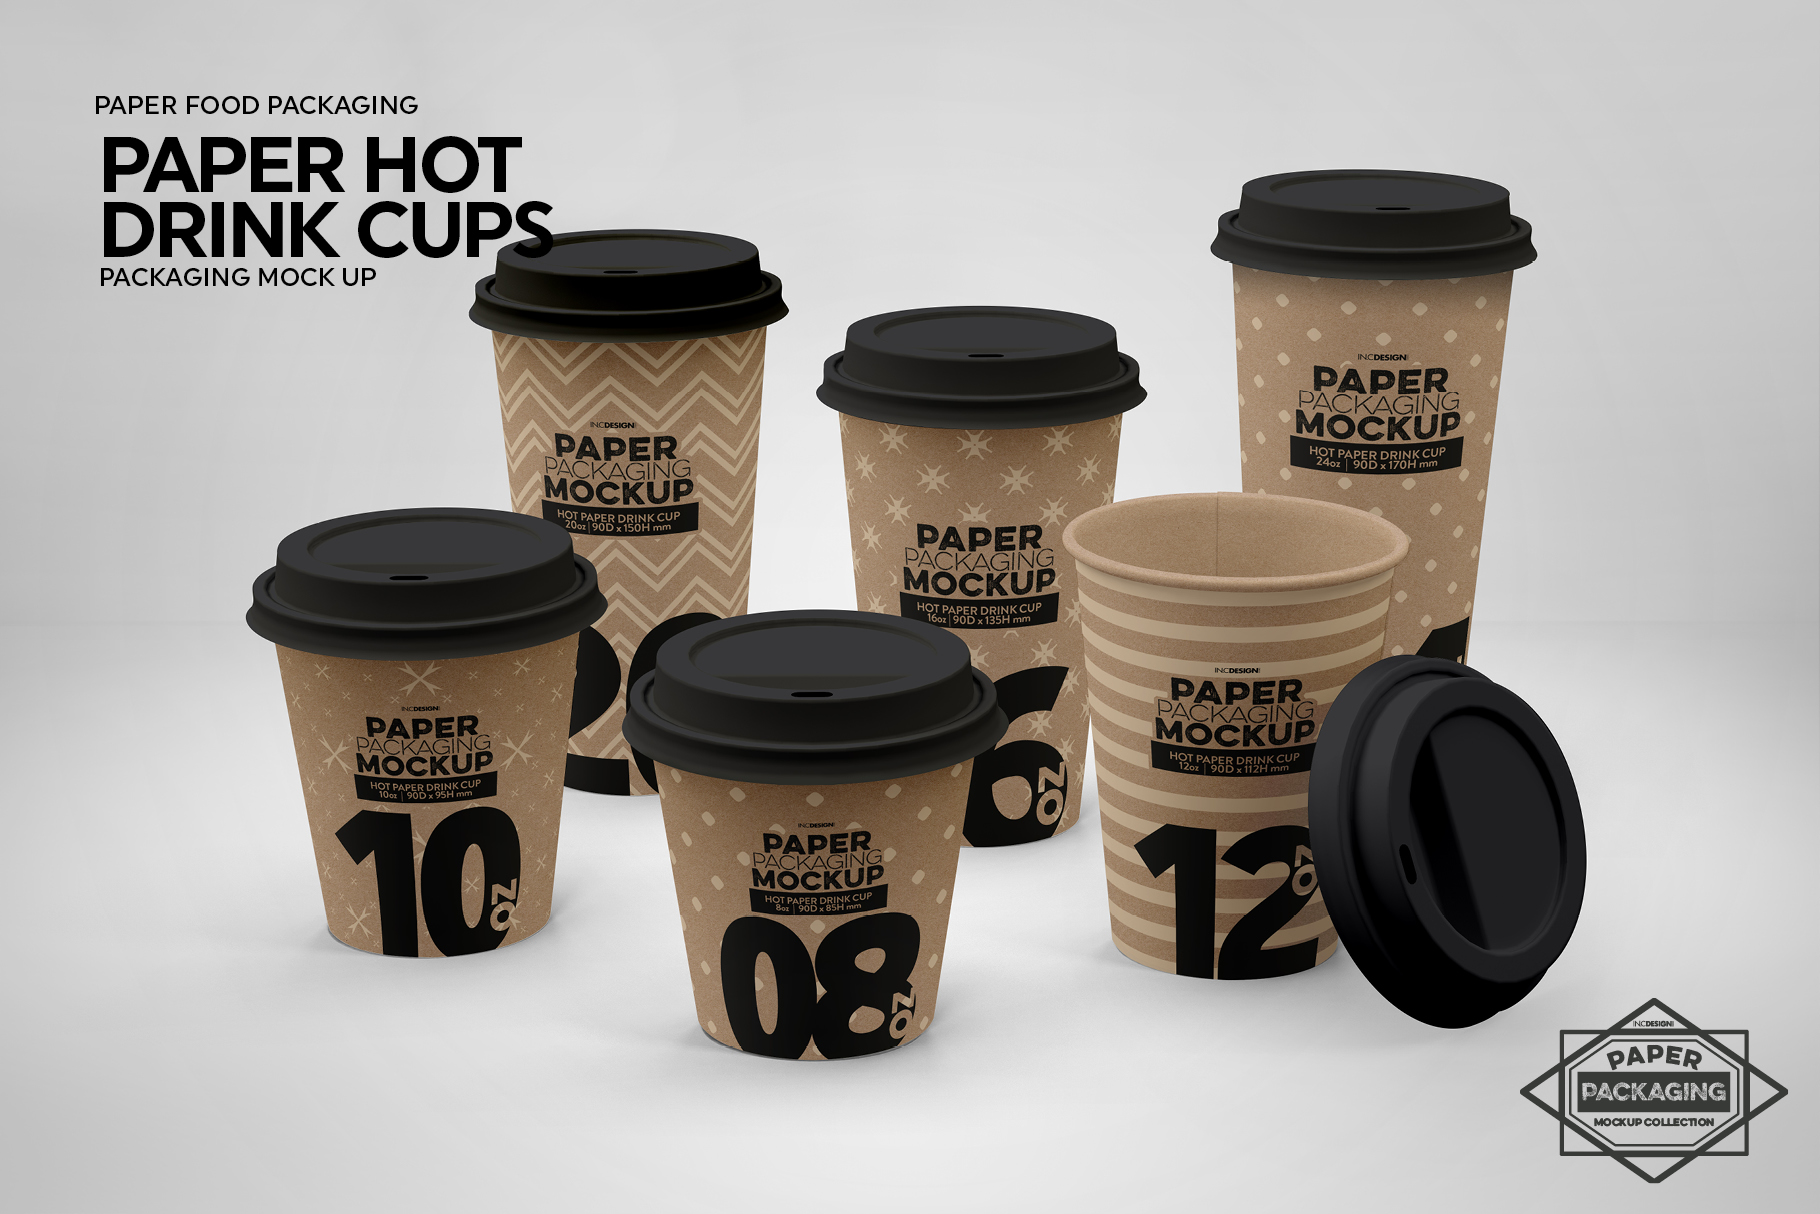 Paper Hot Drink Cups Packaging Mockup example image 5